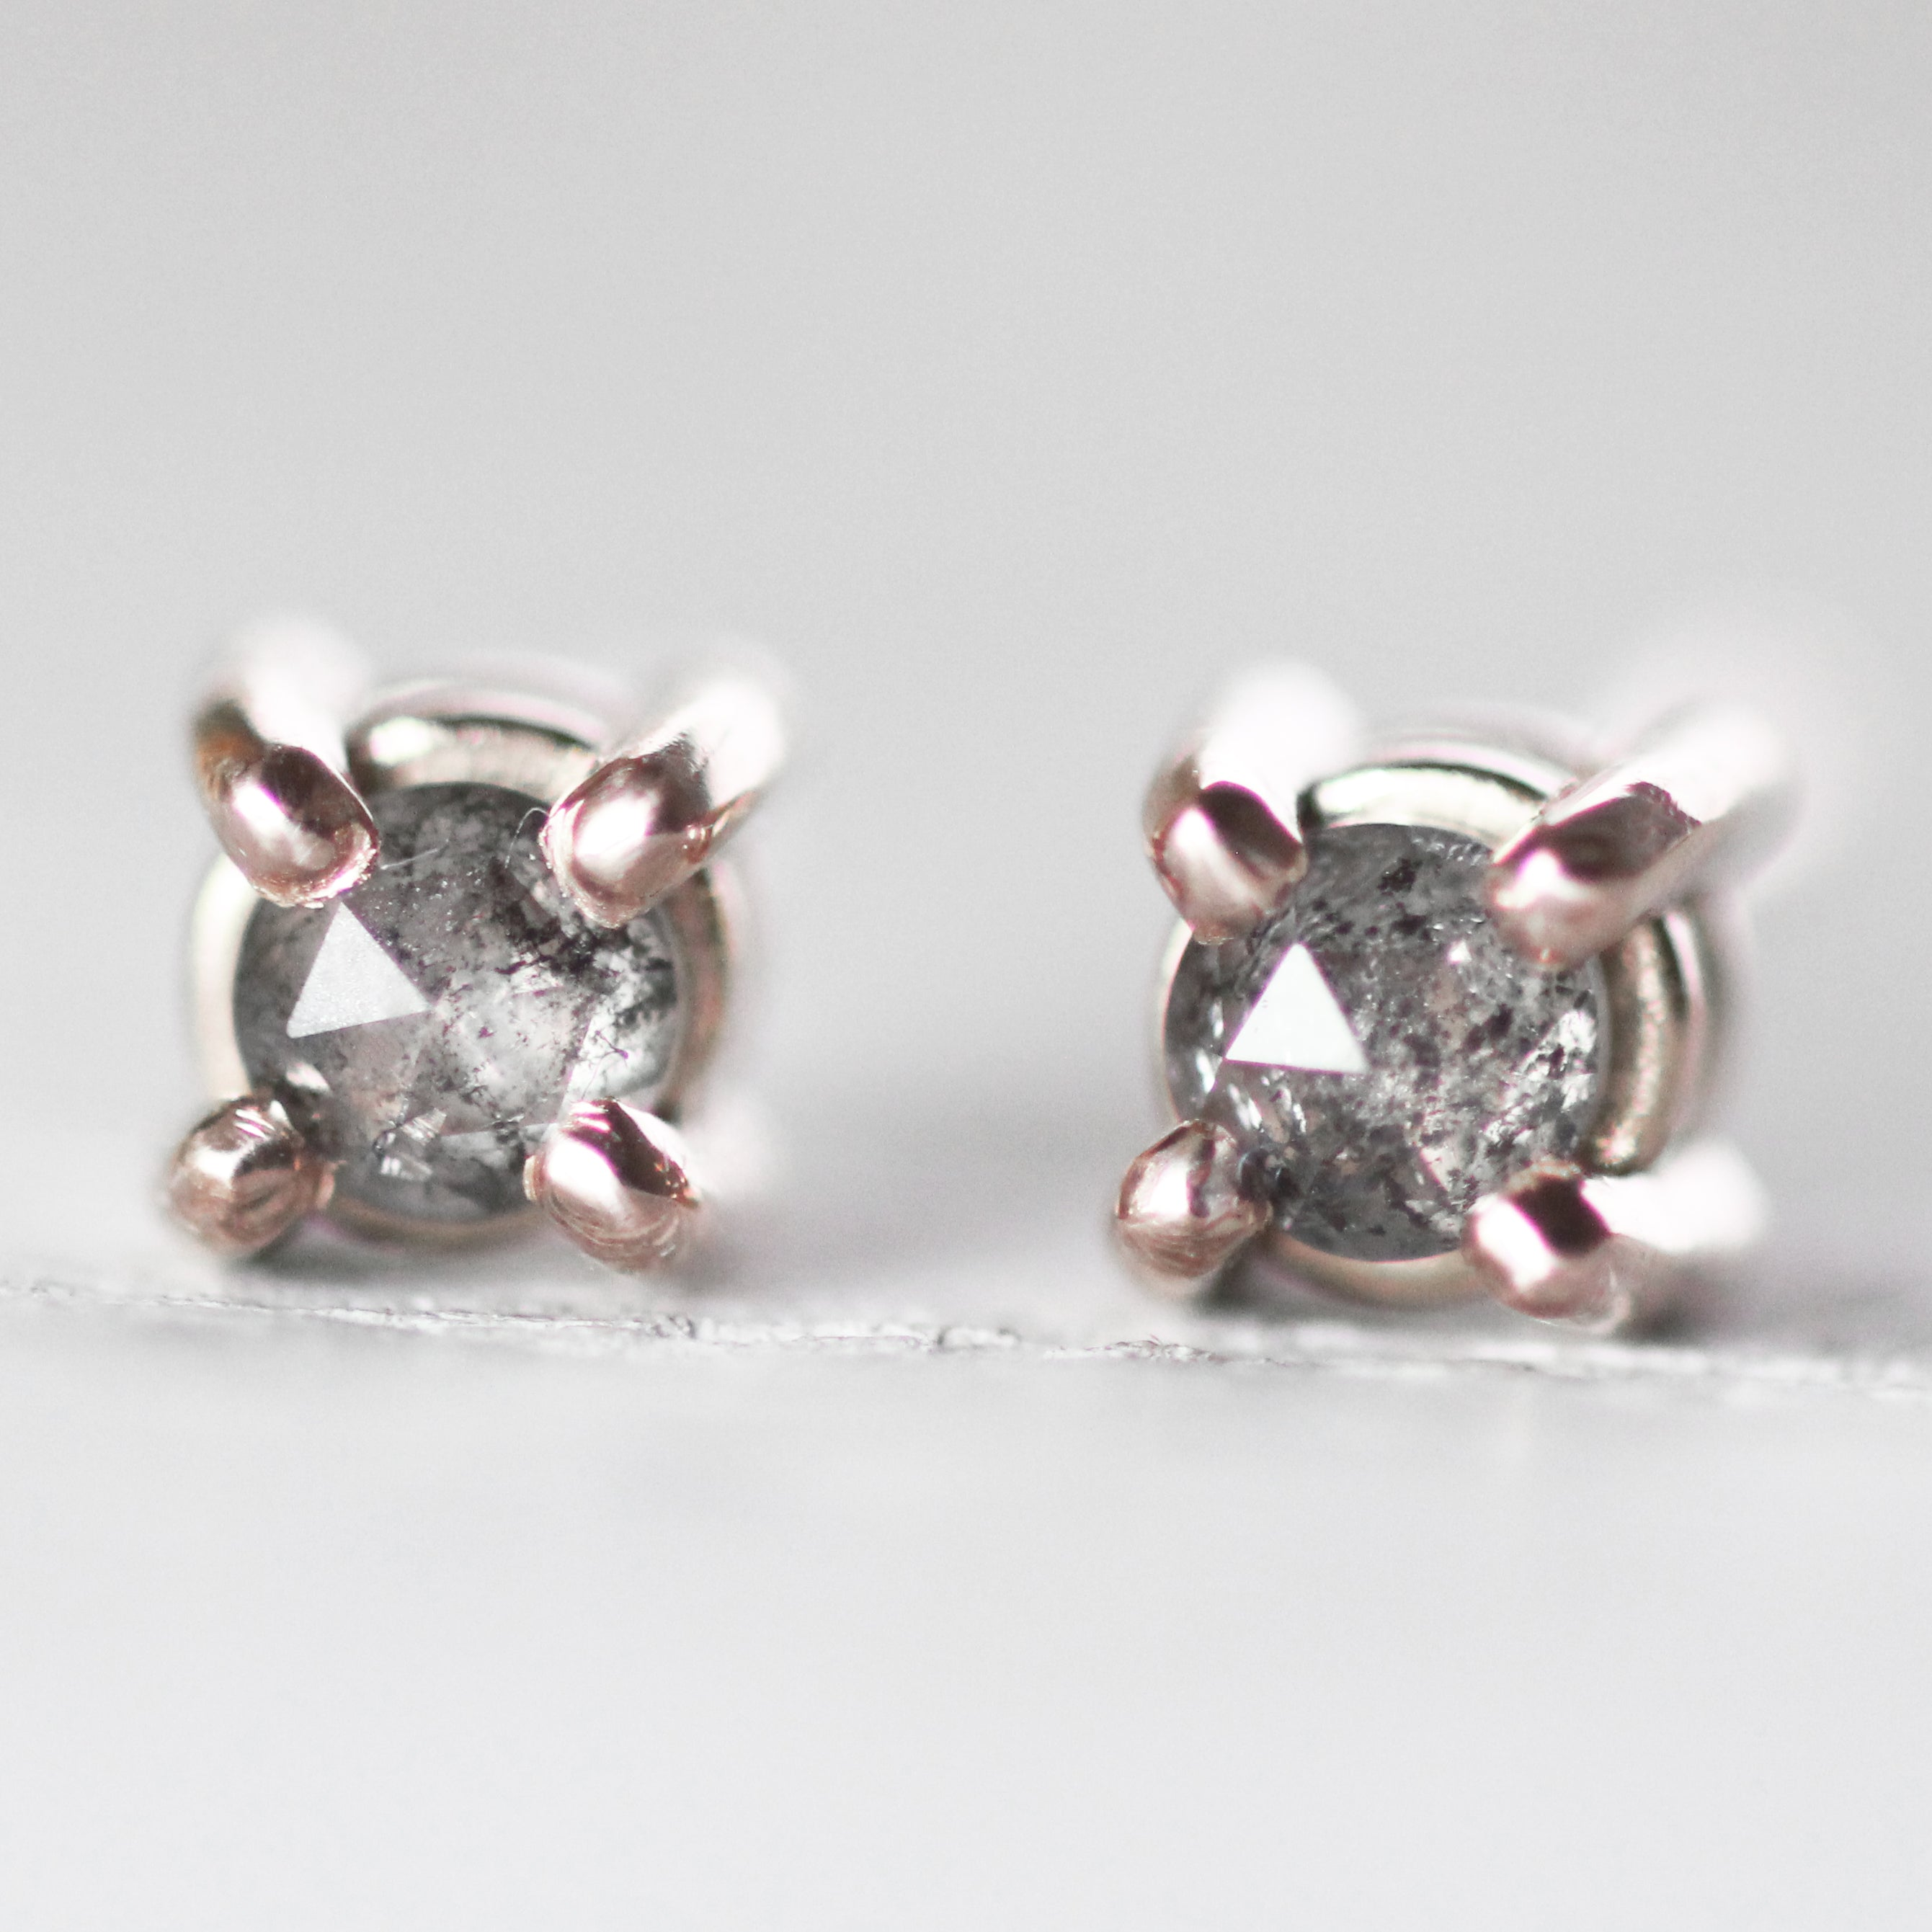 14k Gold Gray Diamond Earring Studs - Rose Cut Celestial - Made to Order + Will Ship Fast - Celestial Diamonds ® by Midwinter Co.